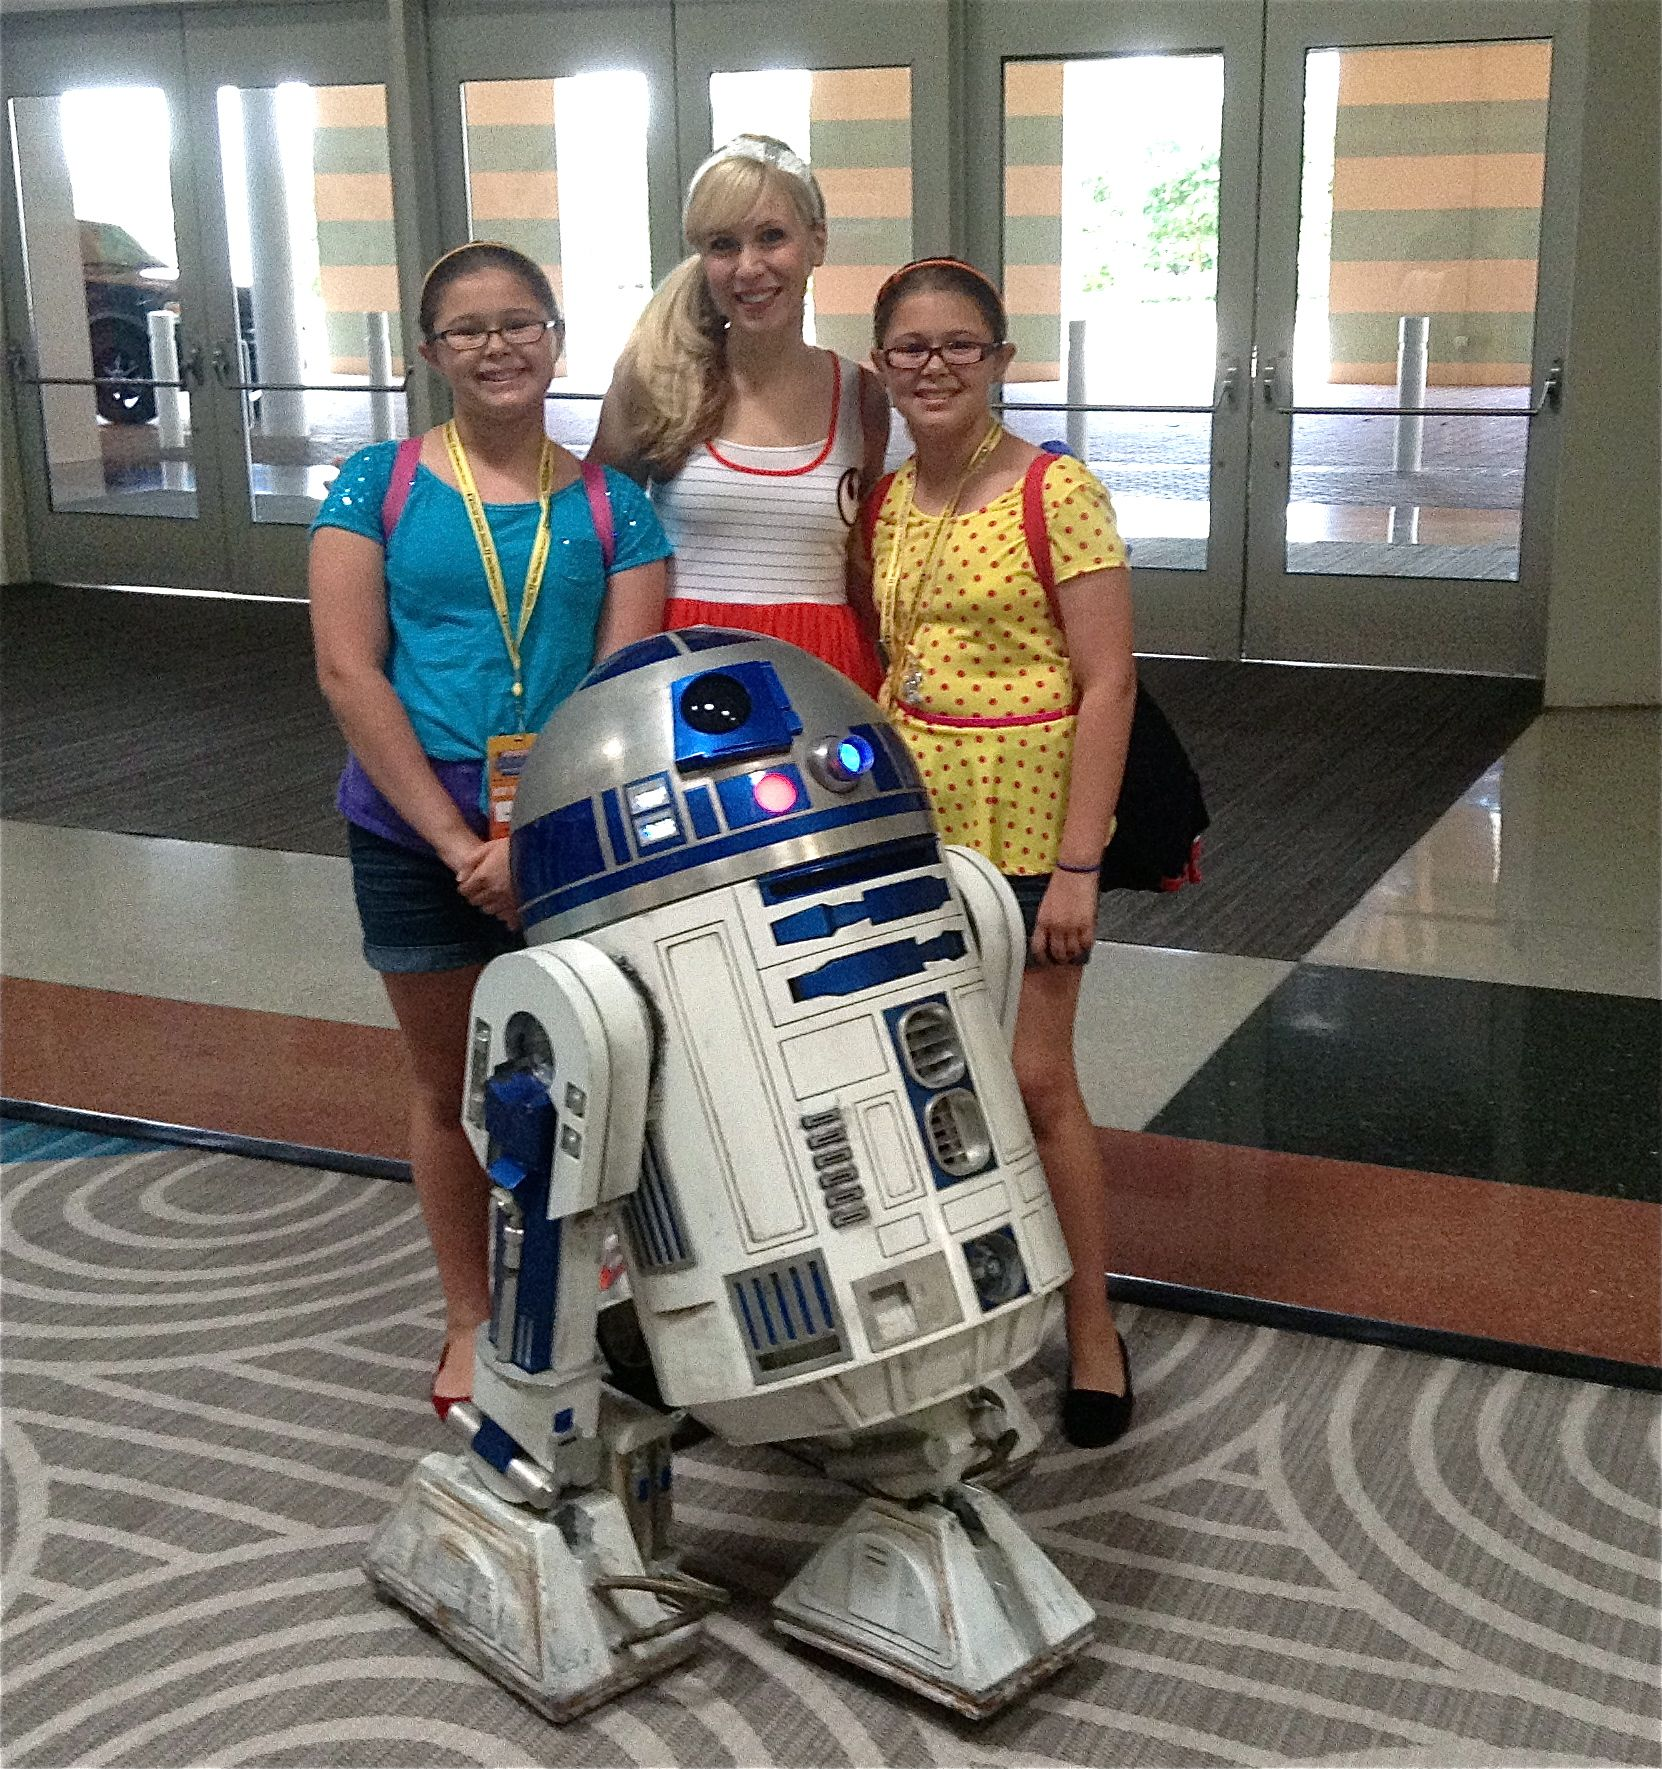 Girl love Sci-Fi too! Los Tweens meets Ashley Eckstein 'Her Universe' Creator and Voice of Ahsoka Tano on Star Wars The Clone Wars to talk Sci-Fi and girl power at Disney Social Media Moms Celebration